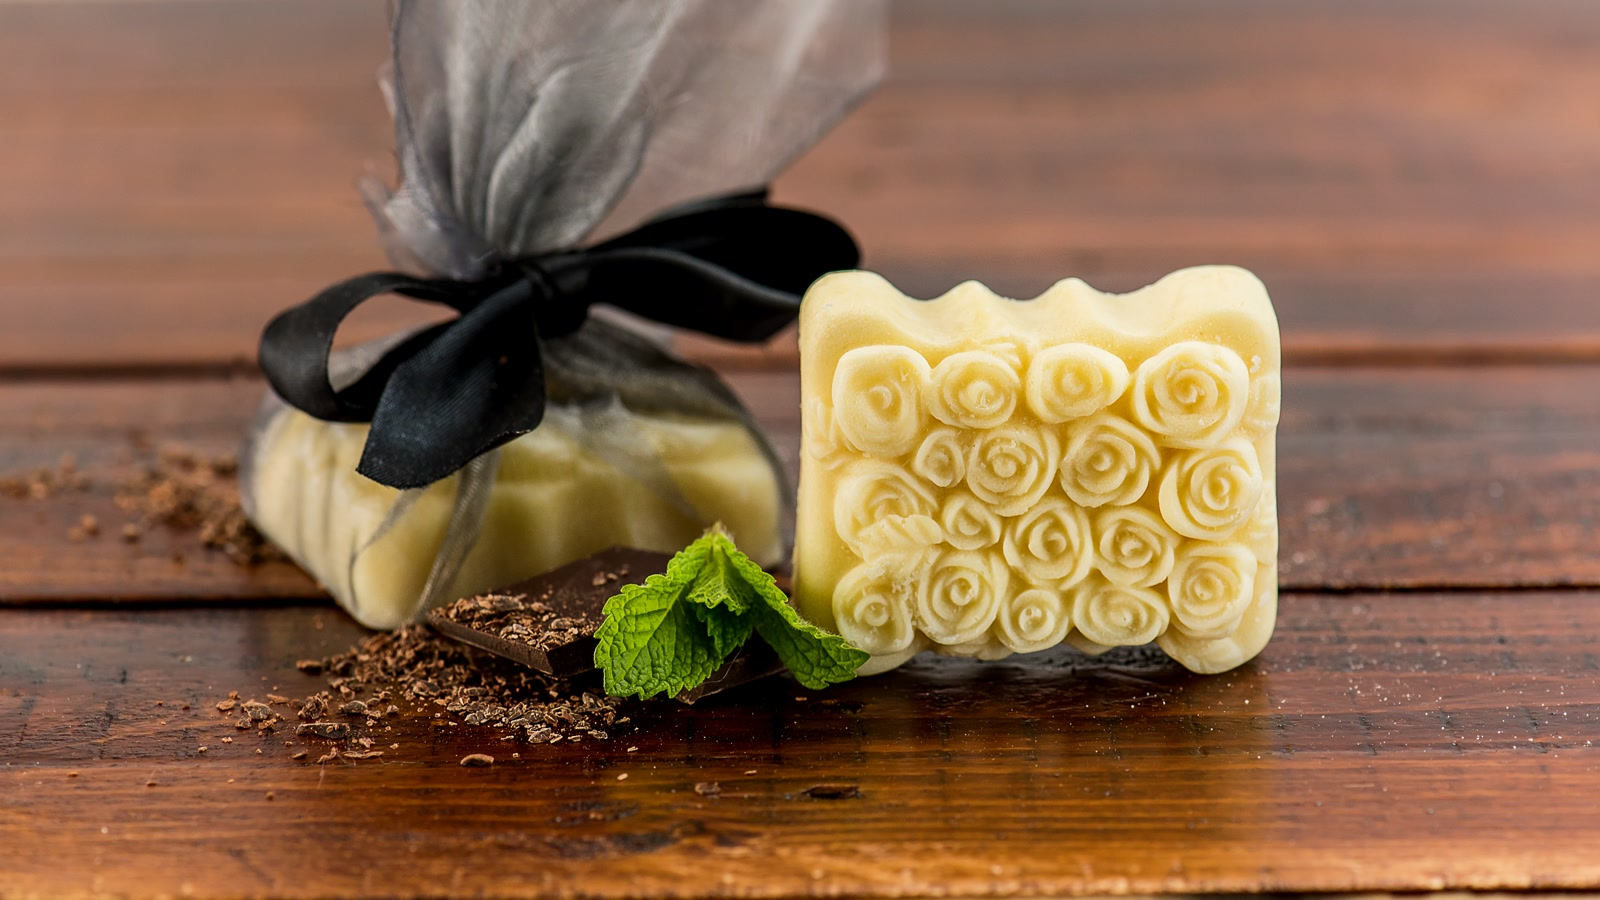 How to make your own aromatic massage bar